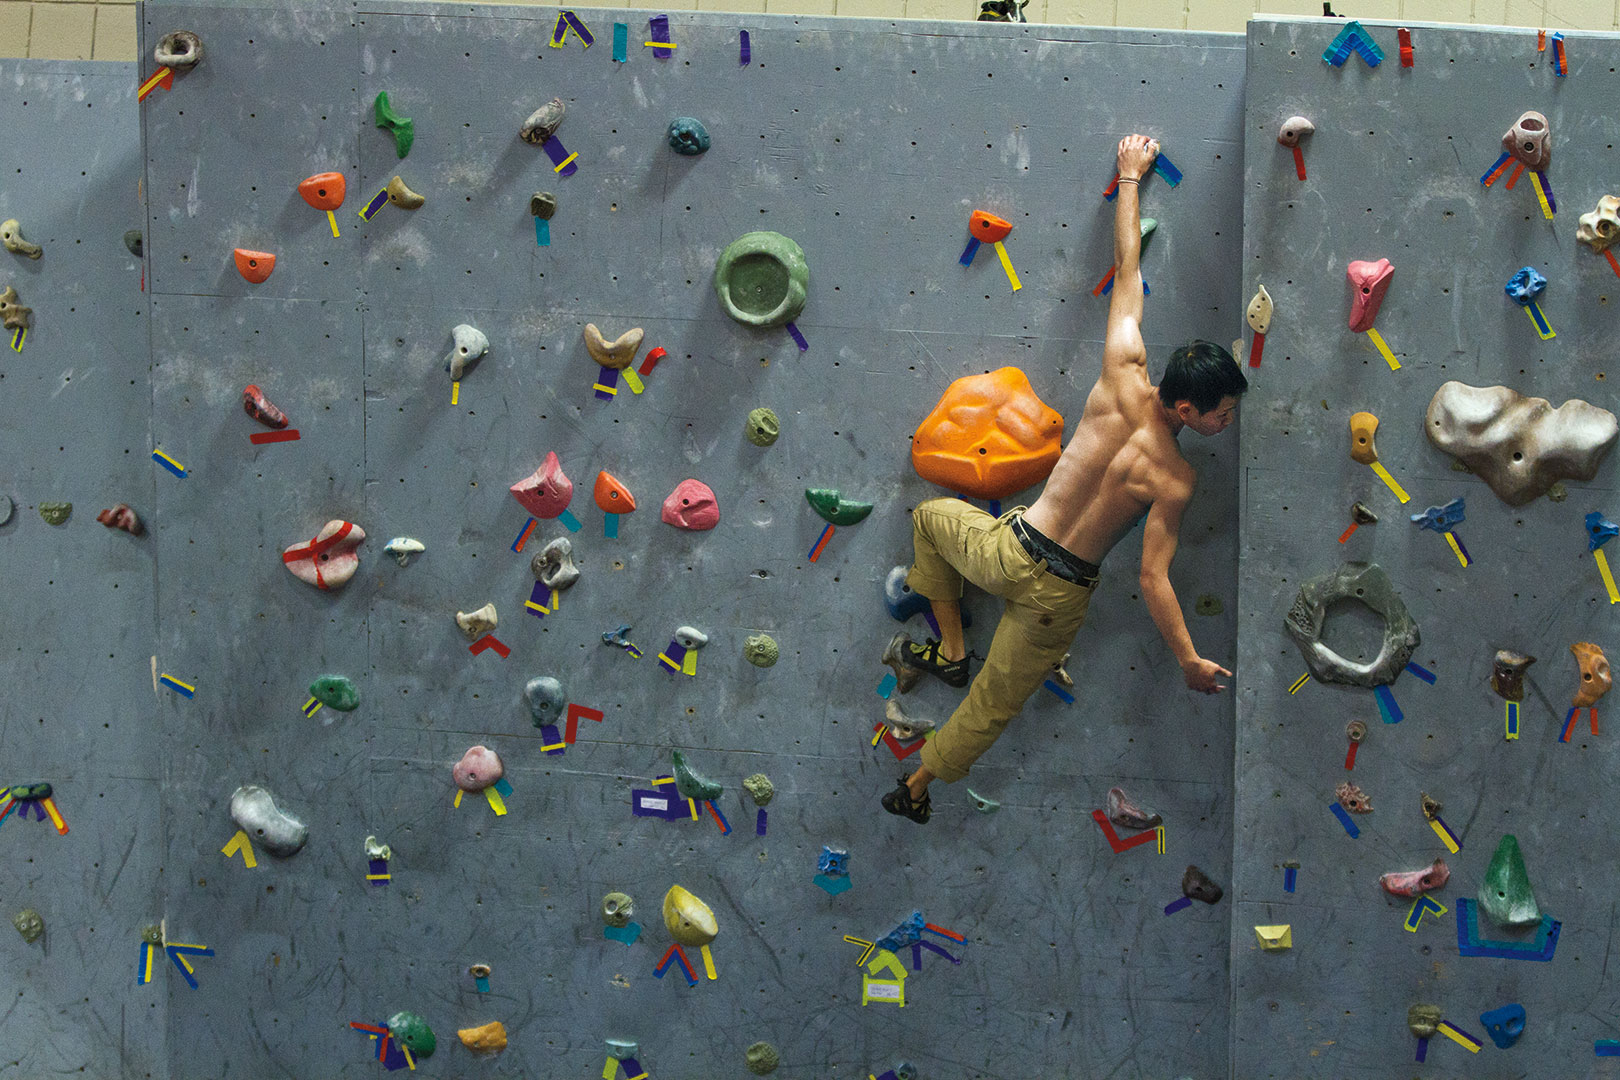 Chester Chiao '13 trains on the rock wall in Merill Gymnasium Photograph by Phyllis Graber Jensen/Bates College